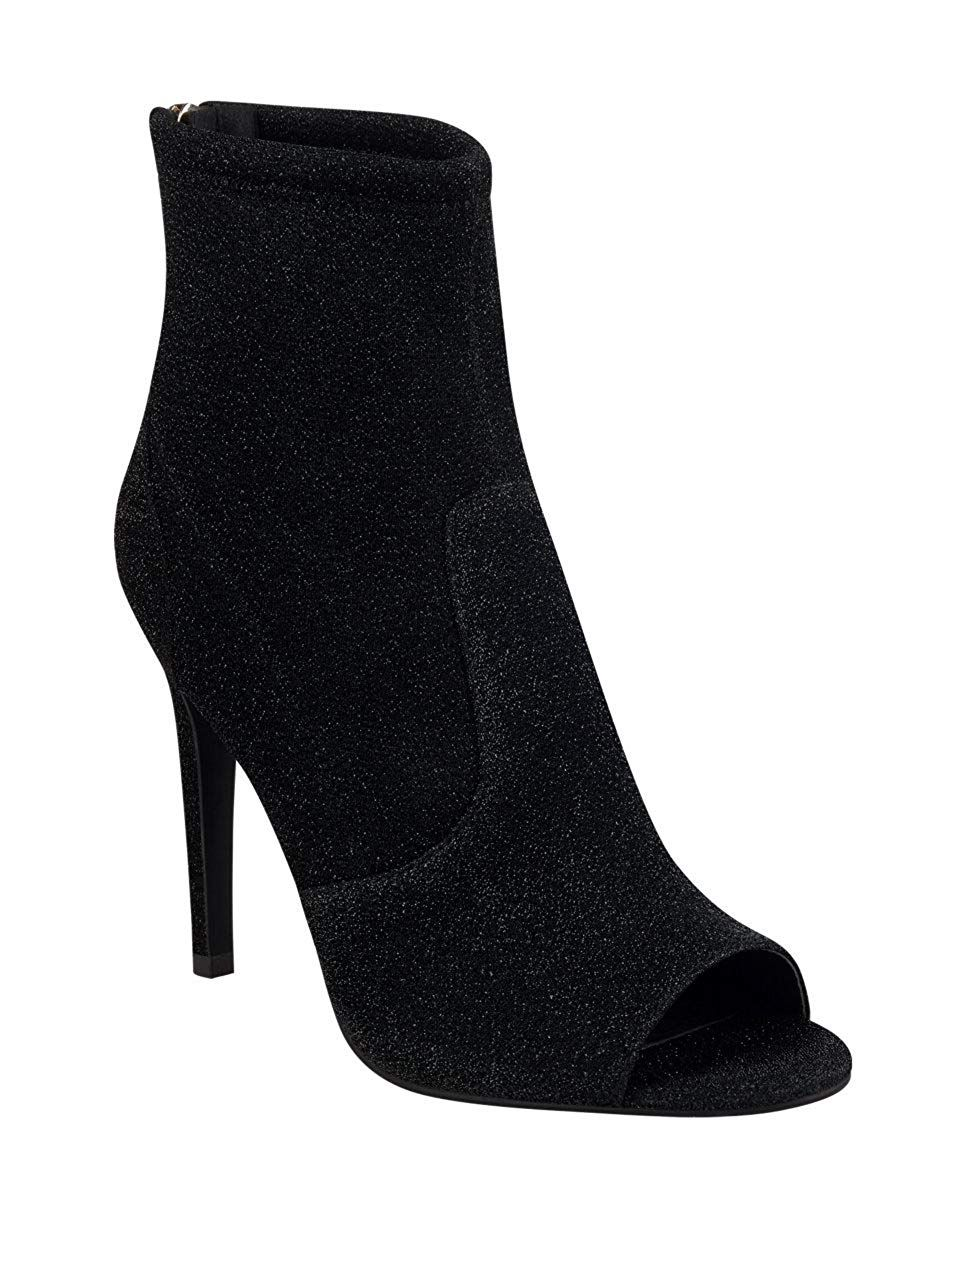 0864a4a03a7a G by Guess Womens bex Open Toe Ankle Fashion Boots     Sincerely hope that